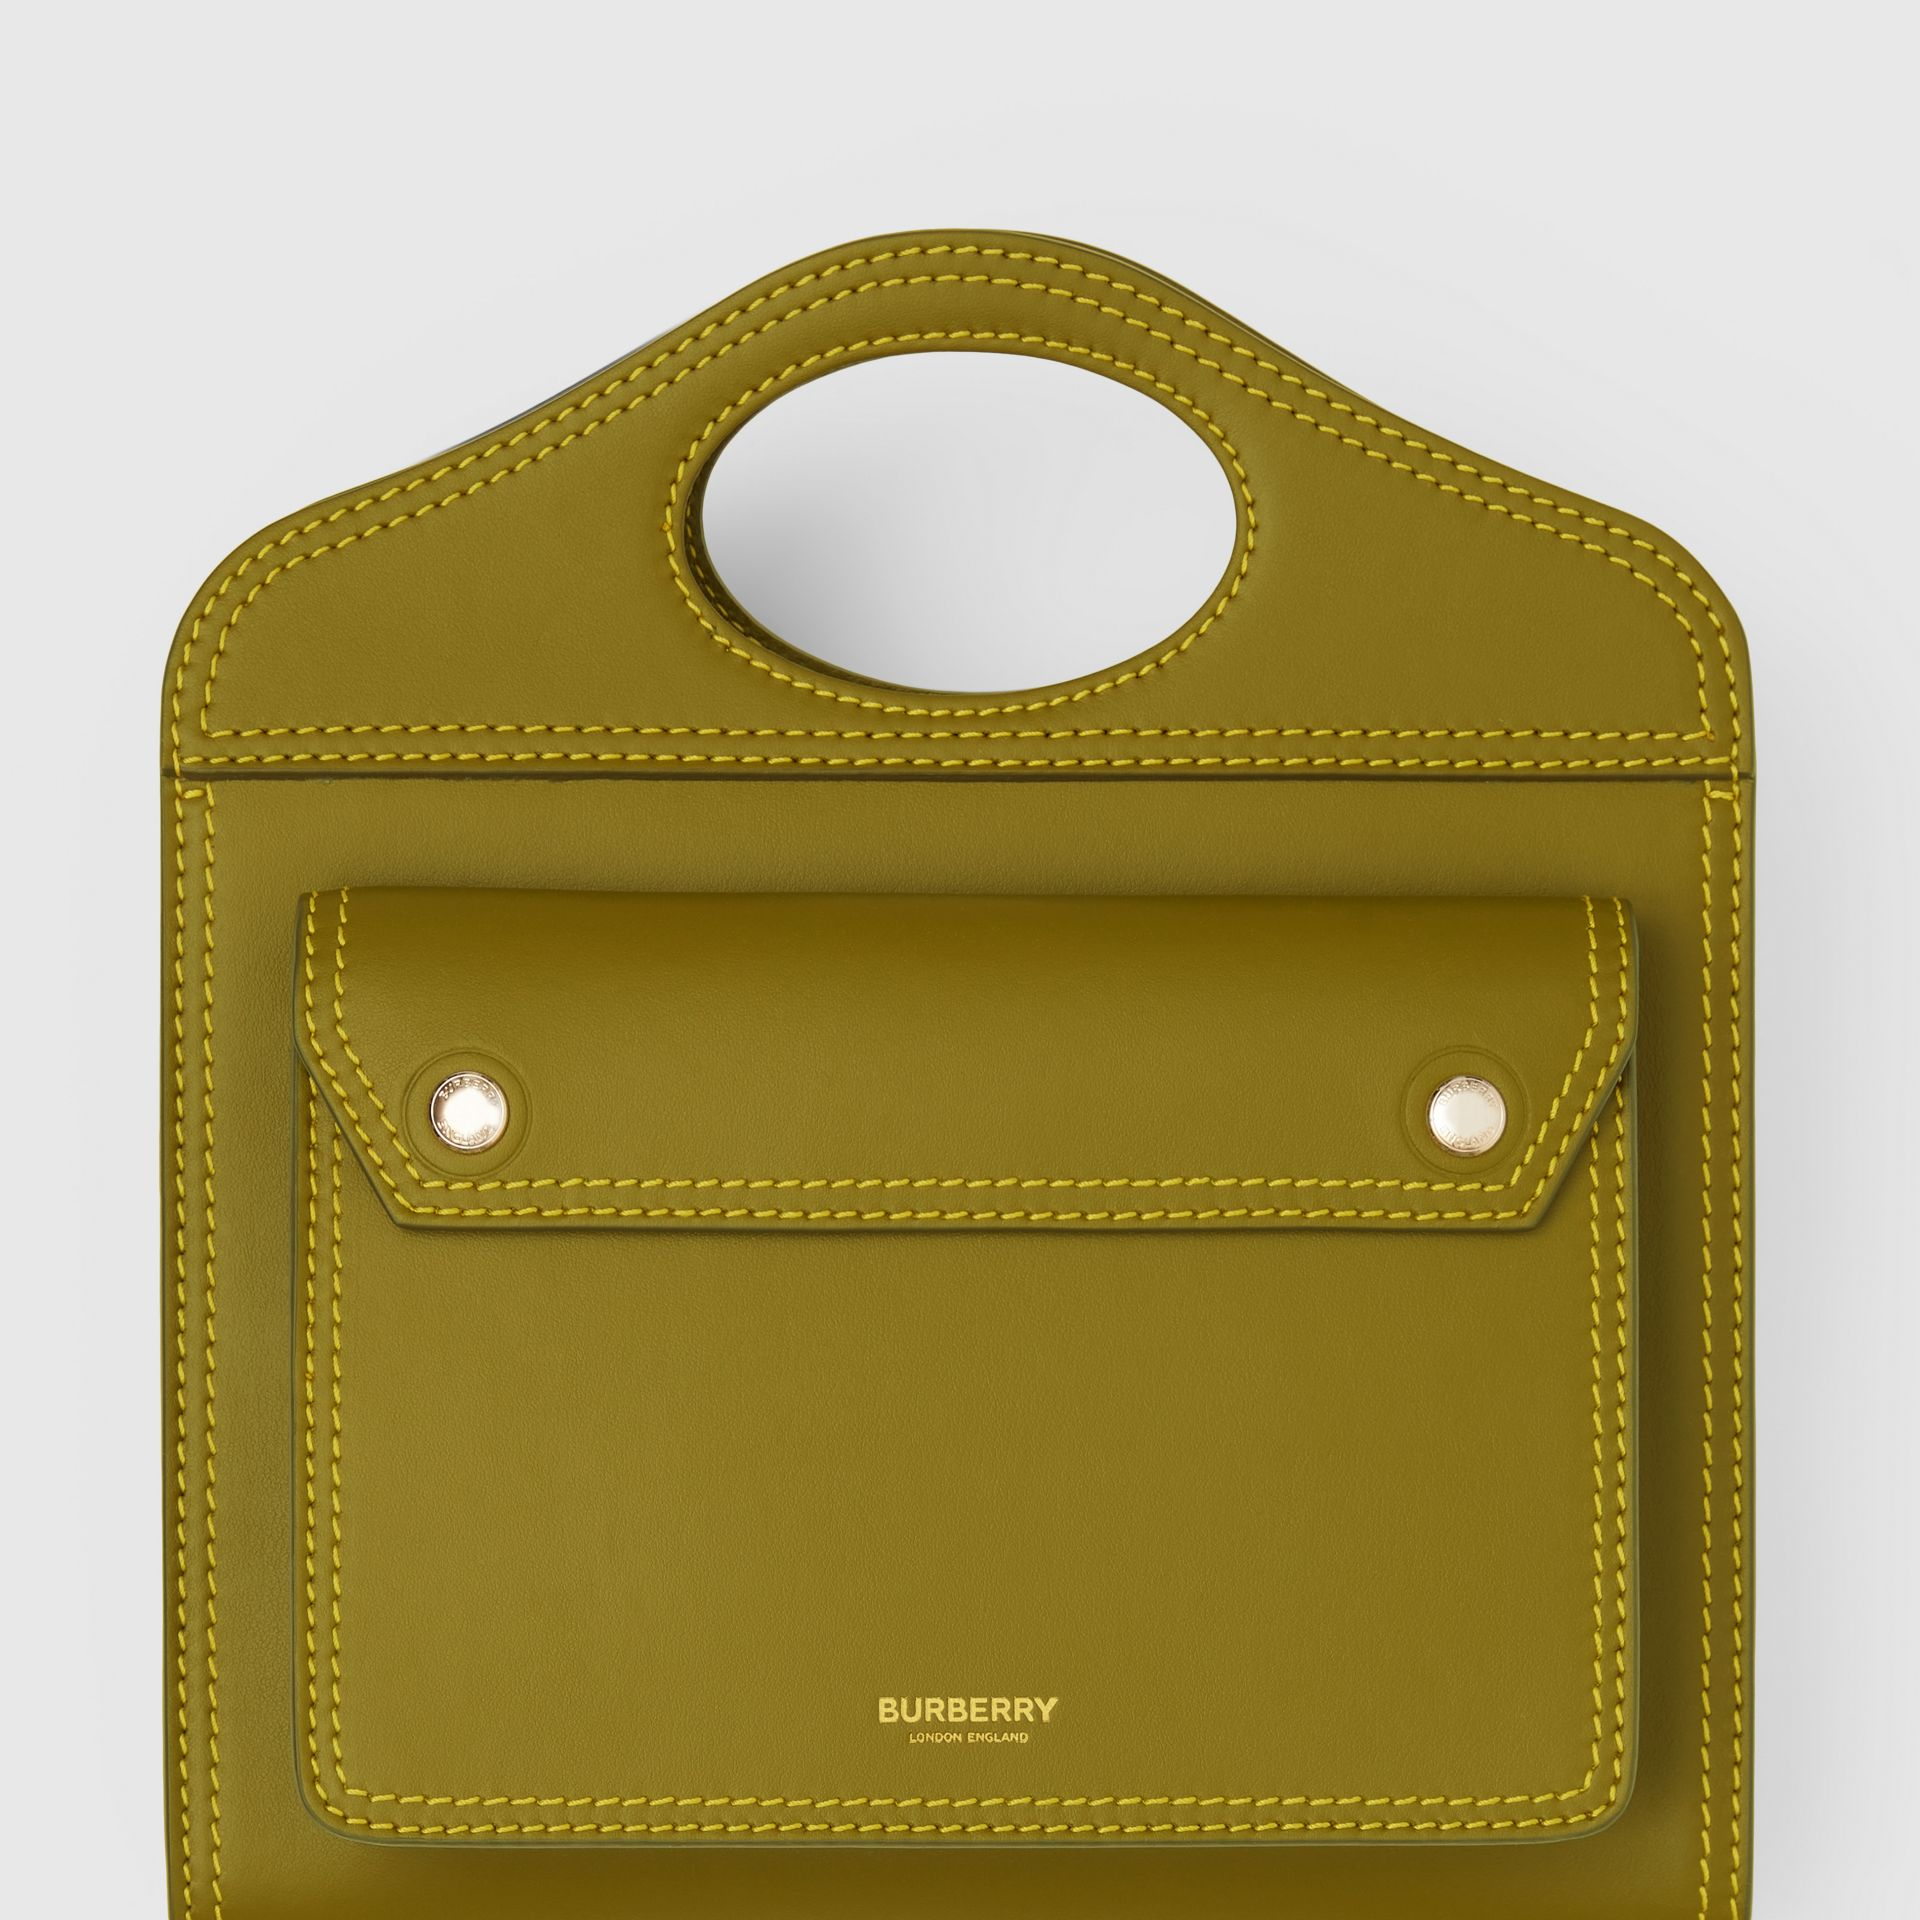 Mini Topstitched Leather Pocket Bag in Juniper Green - Women | Burberry - gallery image 1